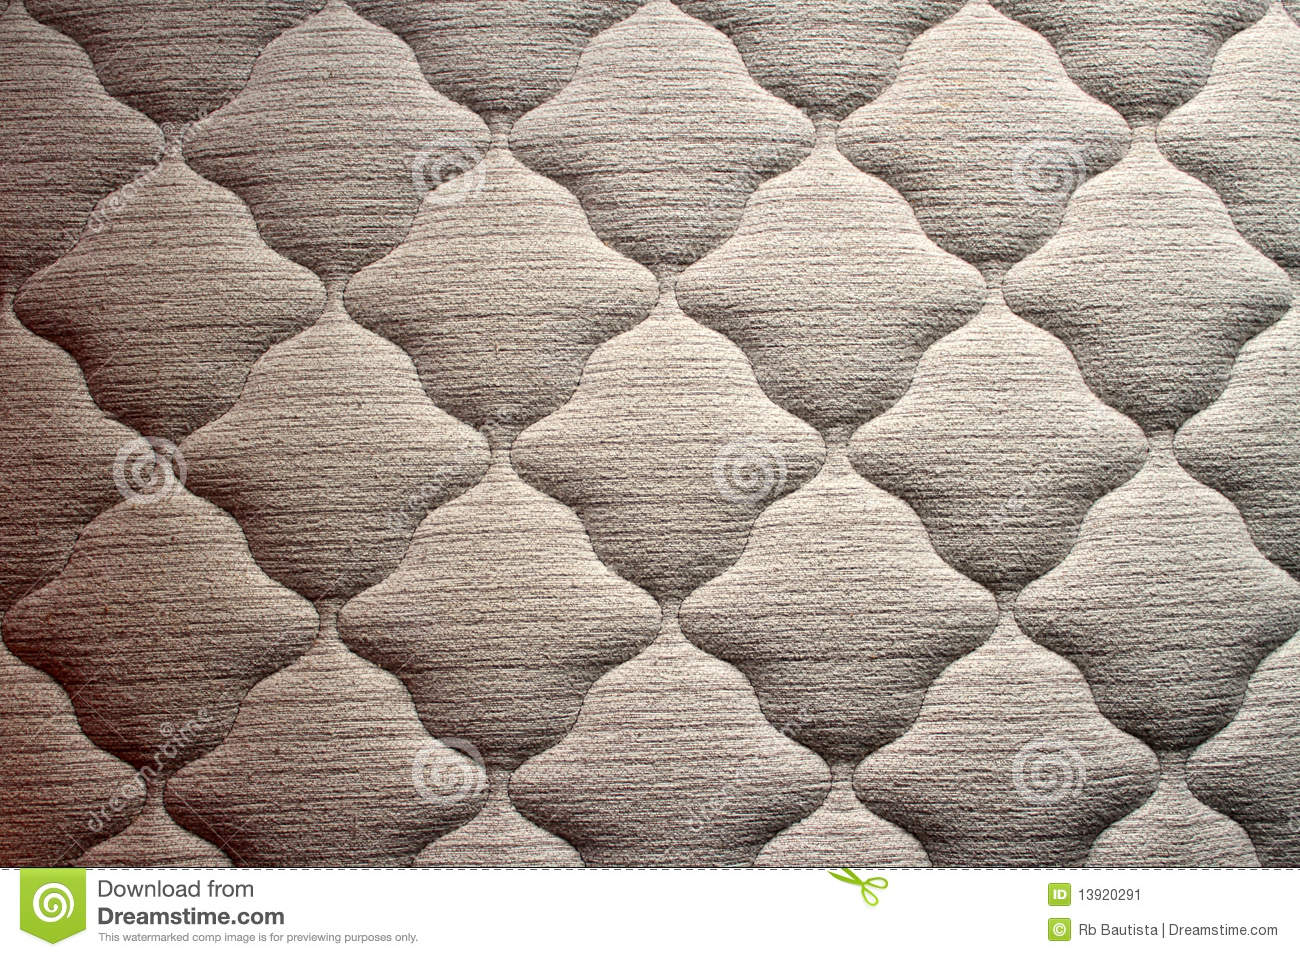 Bed sheet design texture - Mattress Sheet Texture